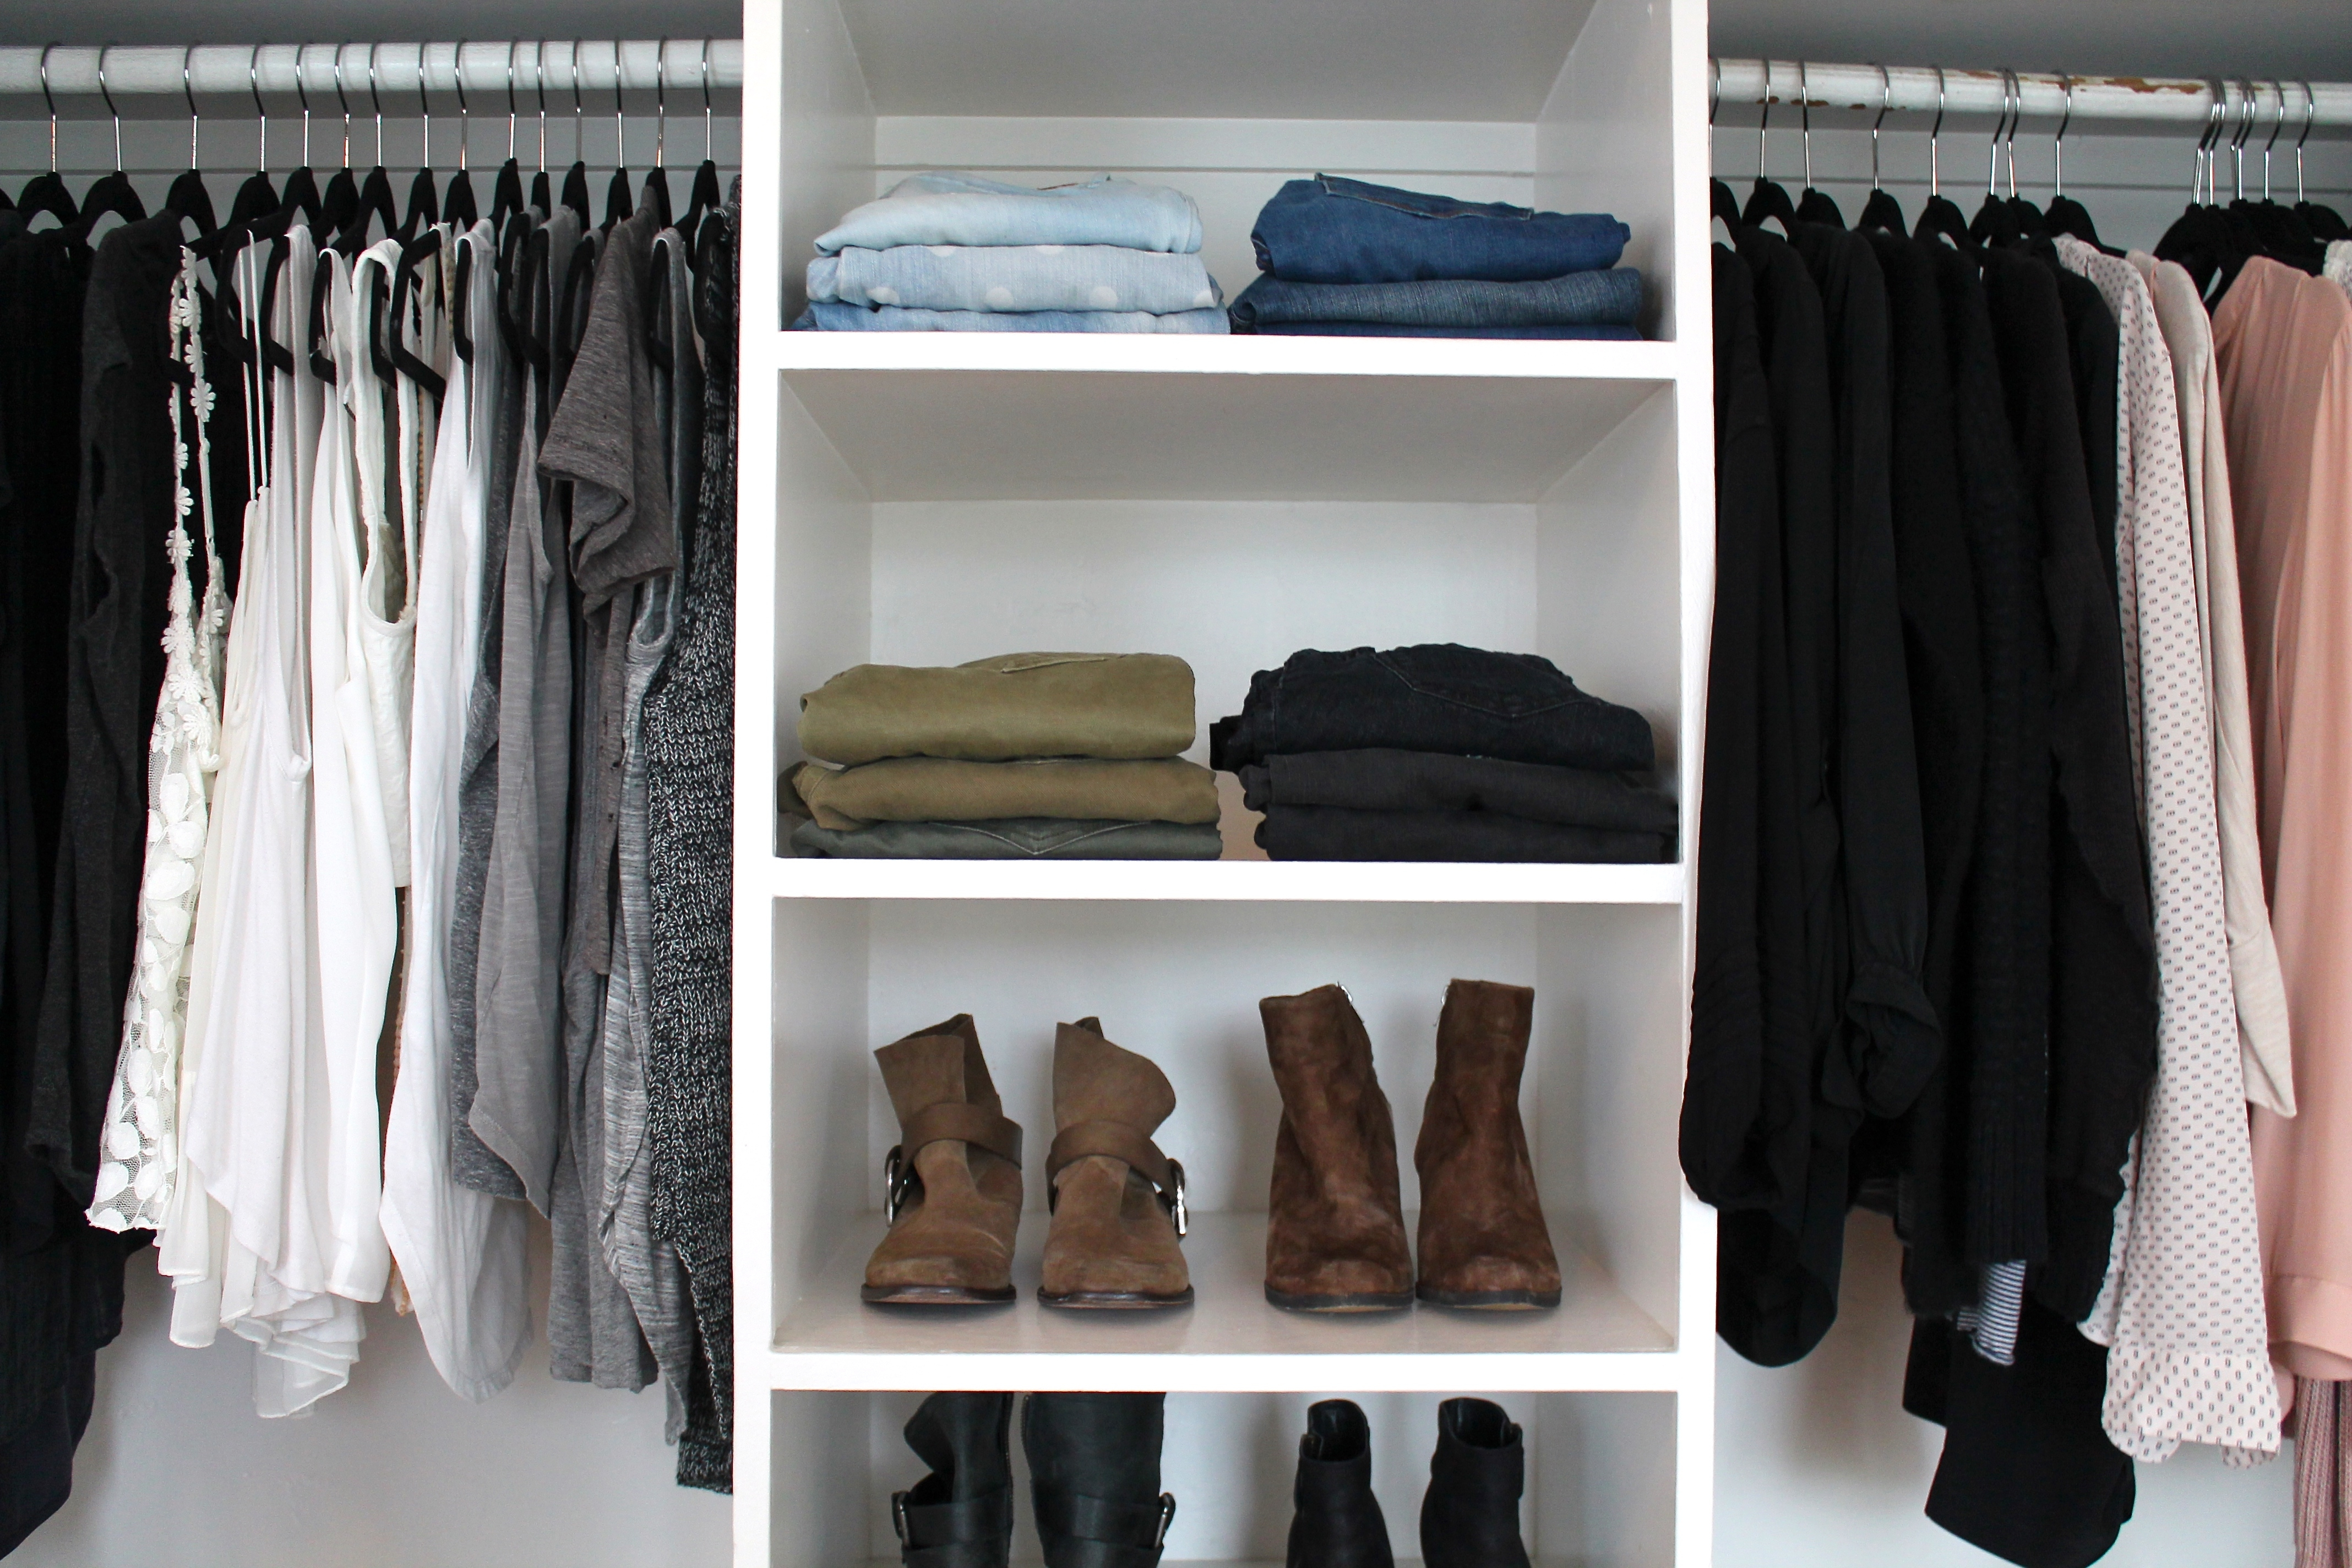 Clothing Storage In Wardrobe Hangers Storages (Image 16 of 25)